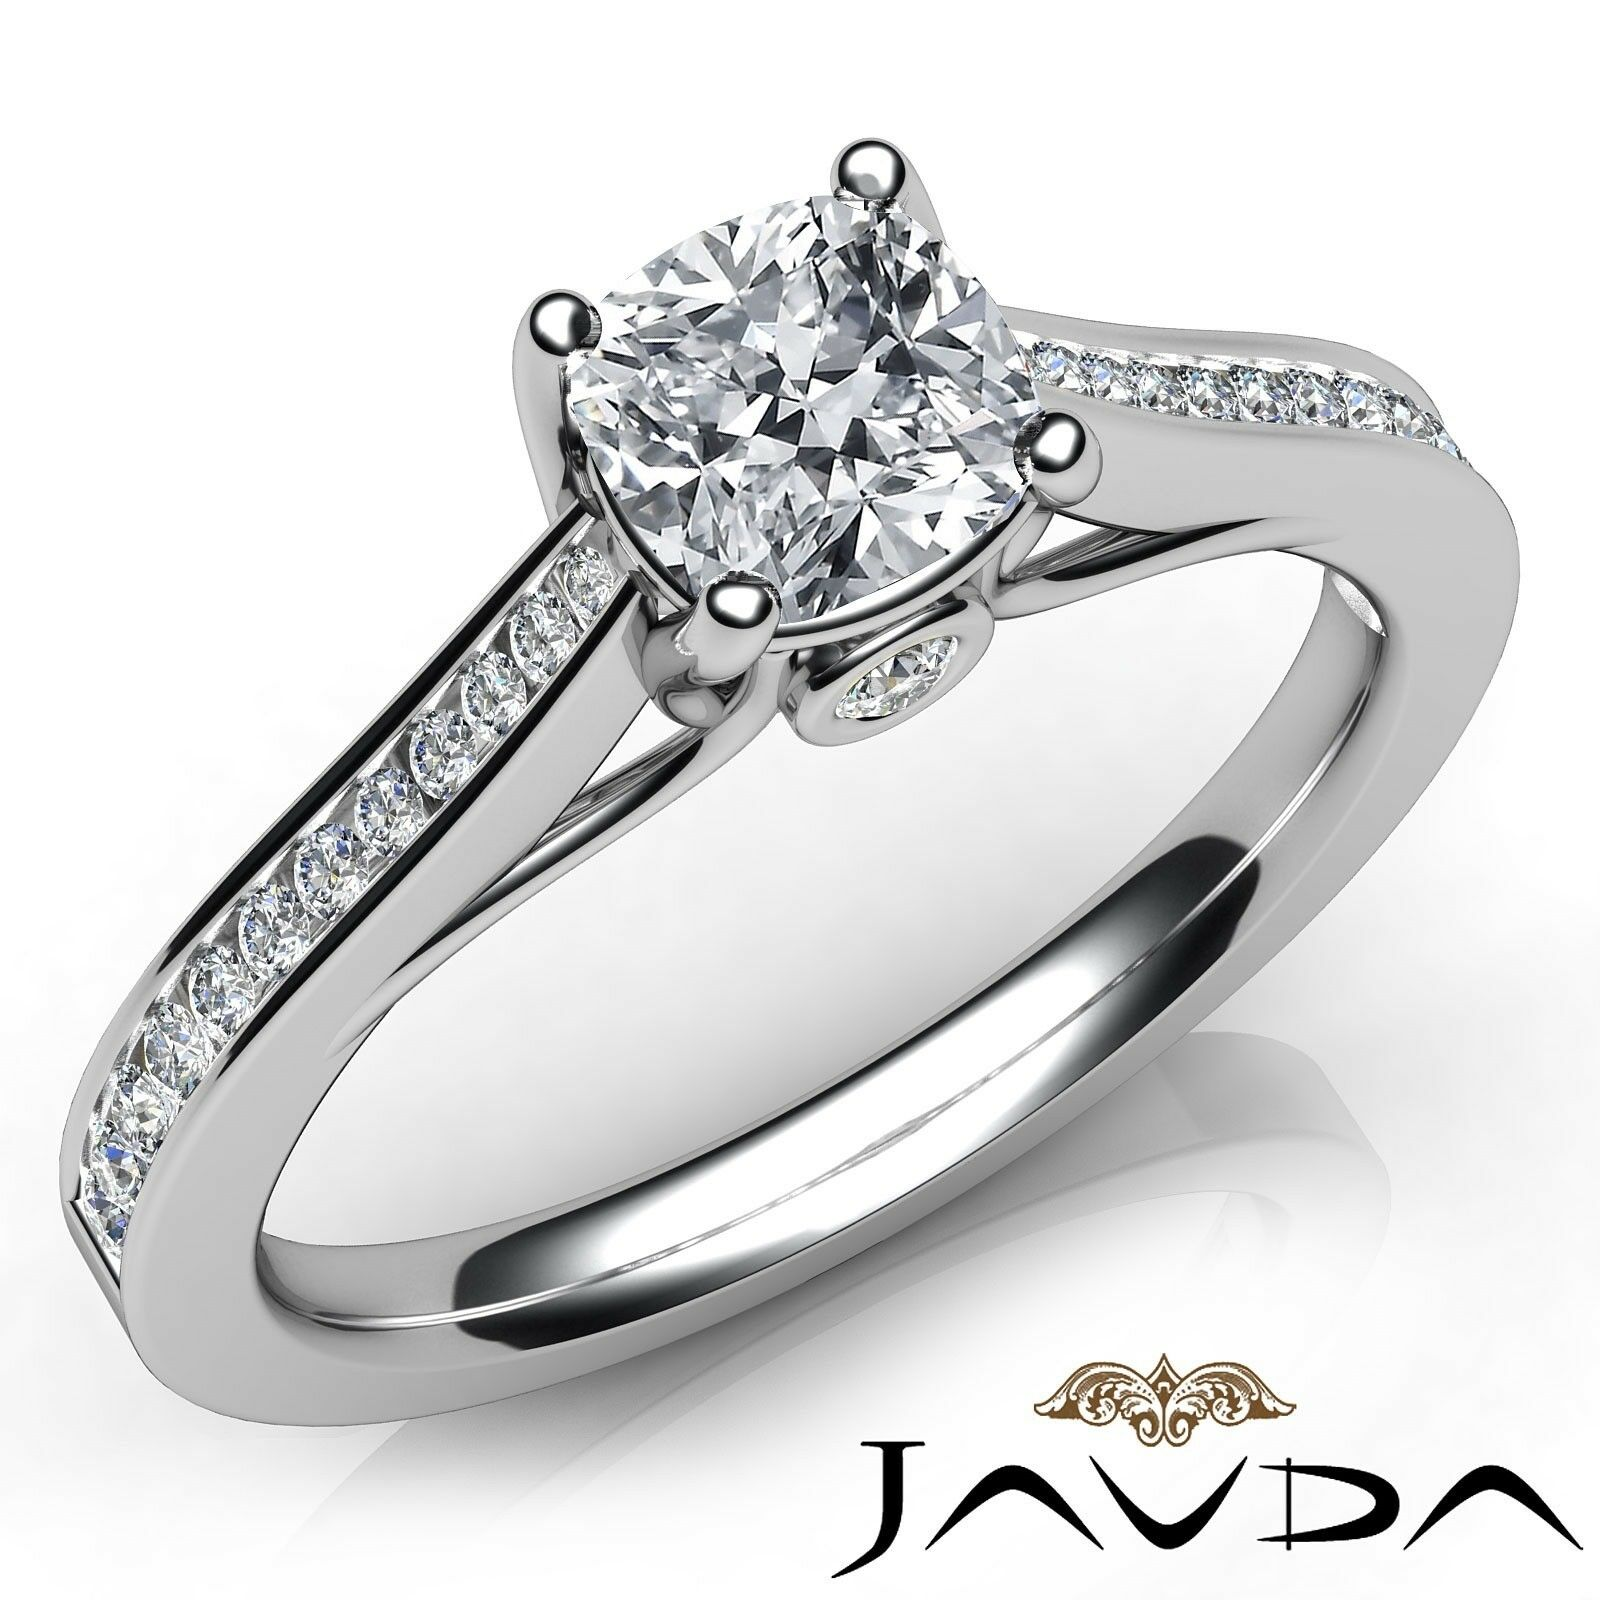 1.2ctw Channel Bezel Prong Set Cushion Diamond Engagement Ring GIA M-SI2 W Gold